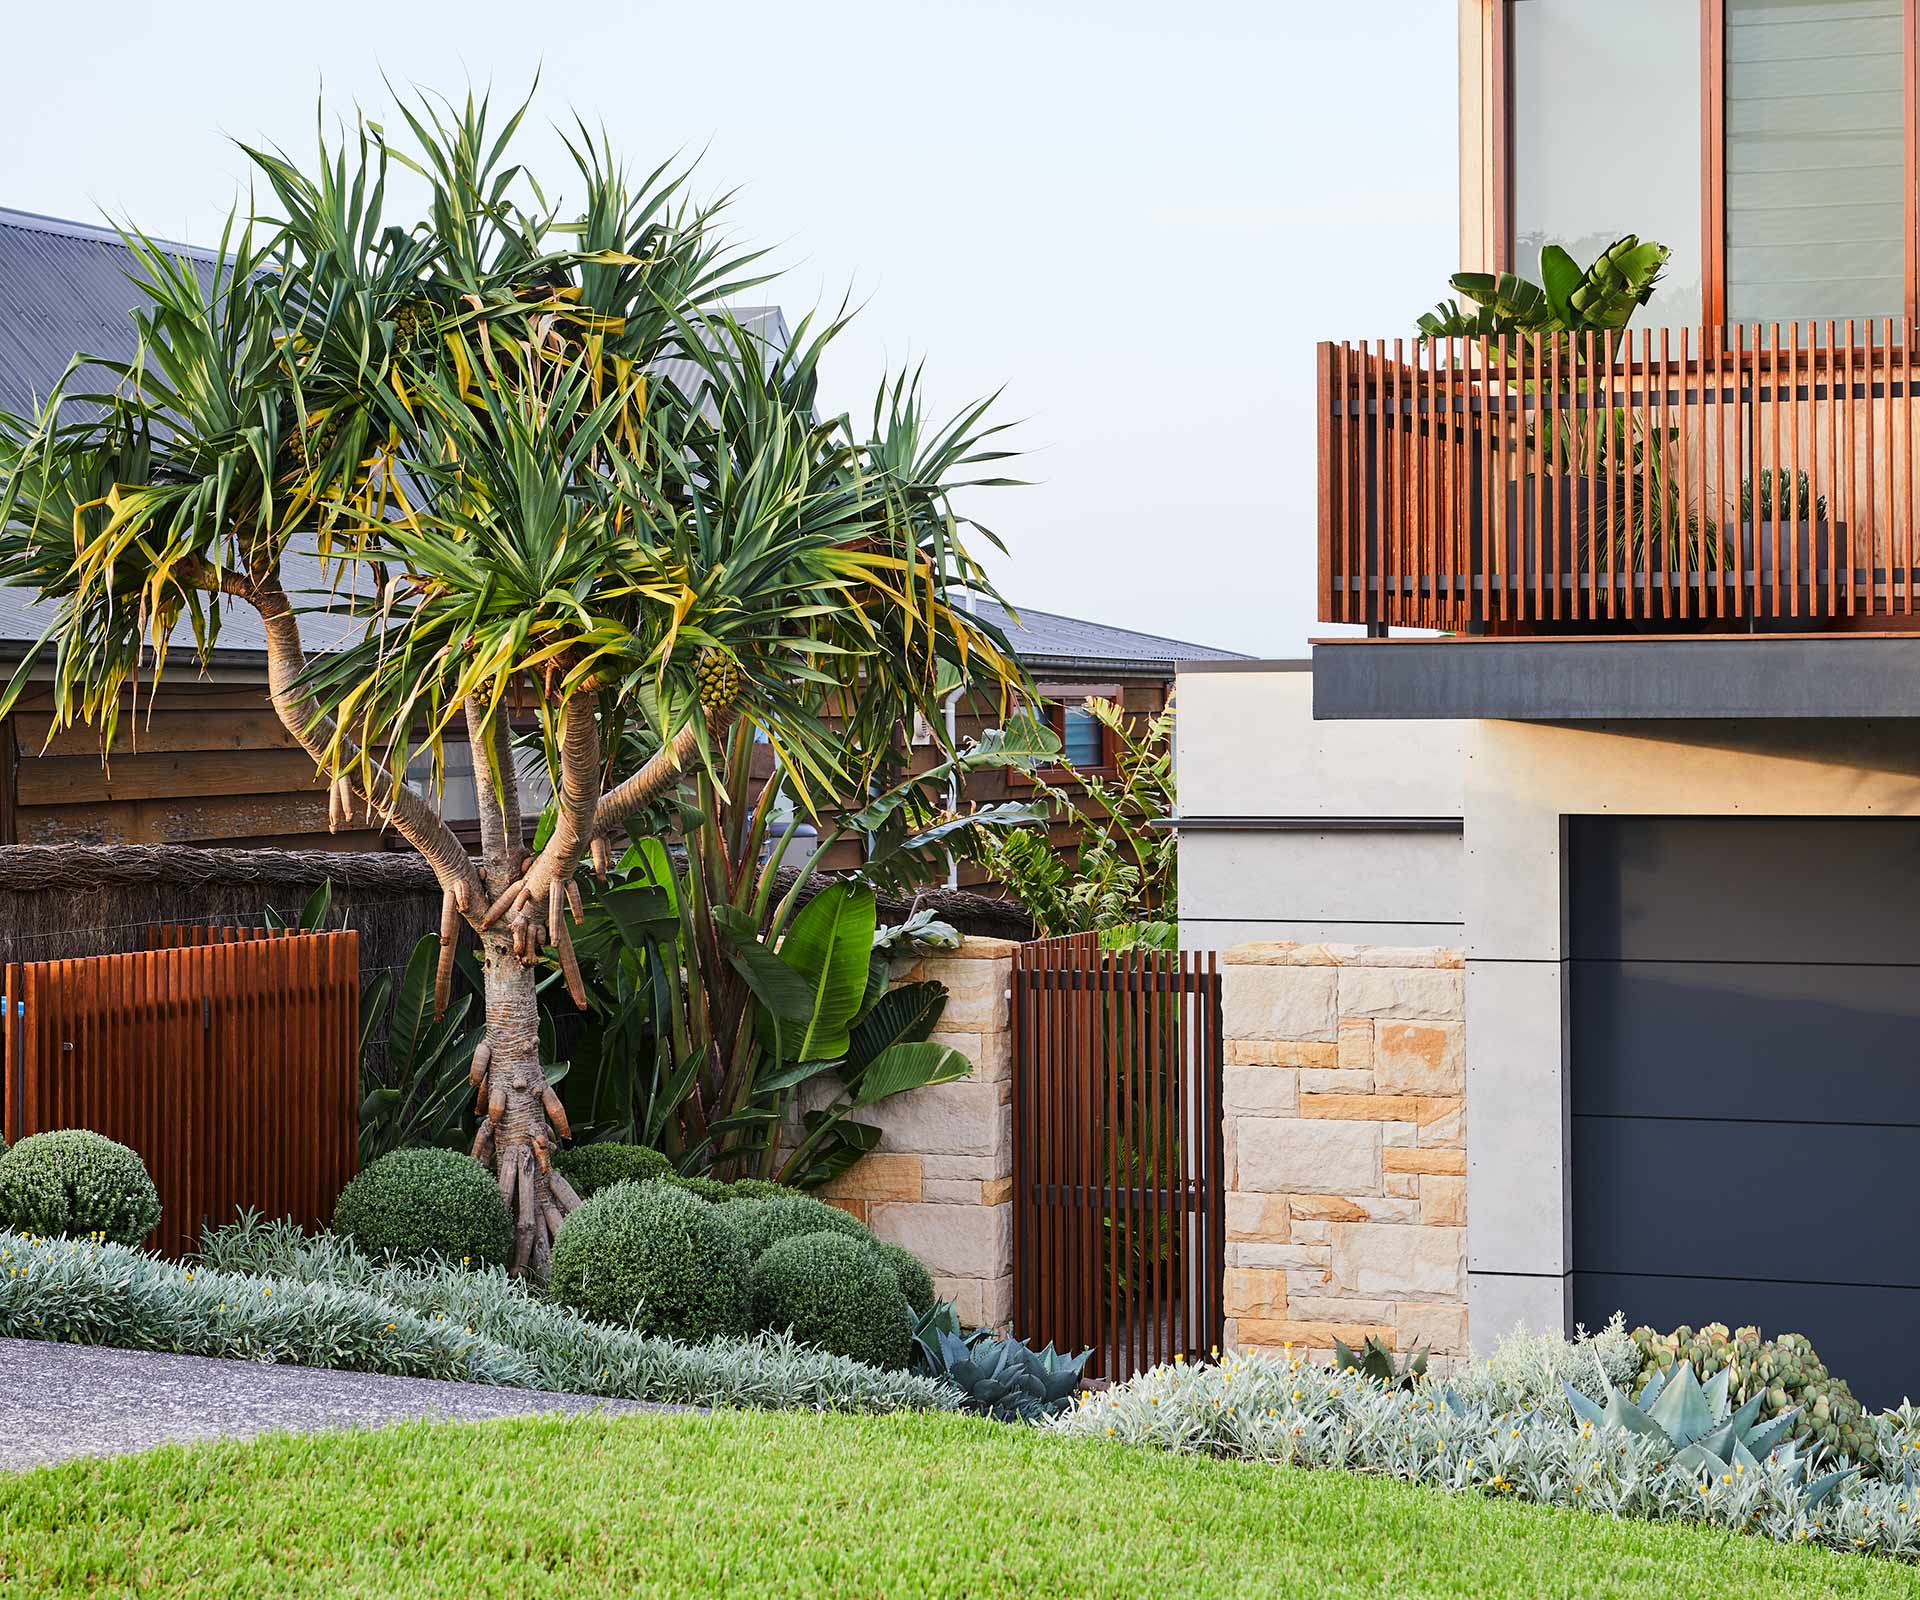 A headland garden with hardy succulents and low-maintenance plants